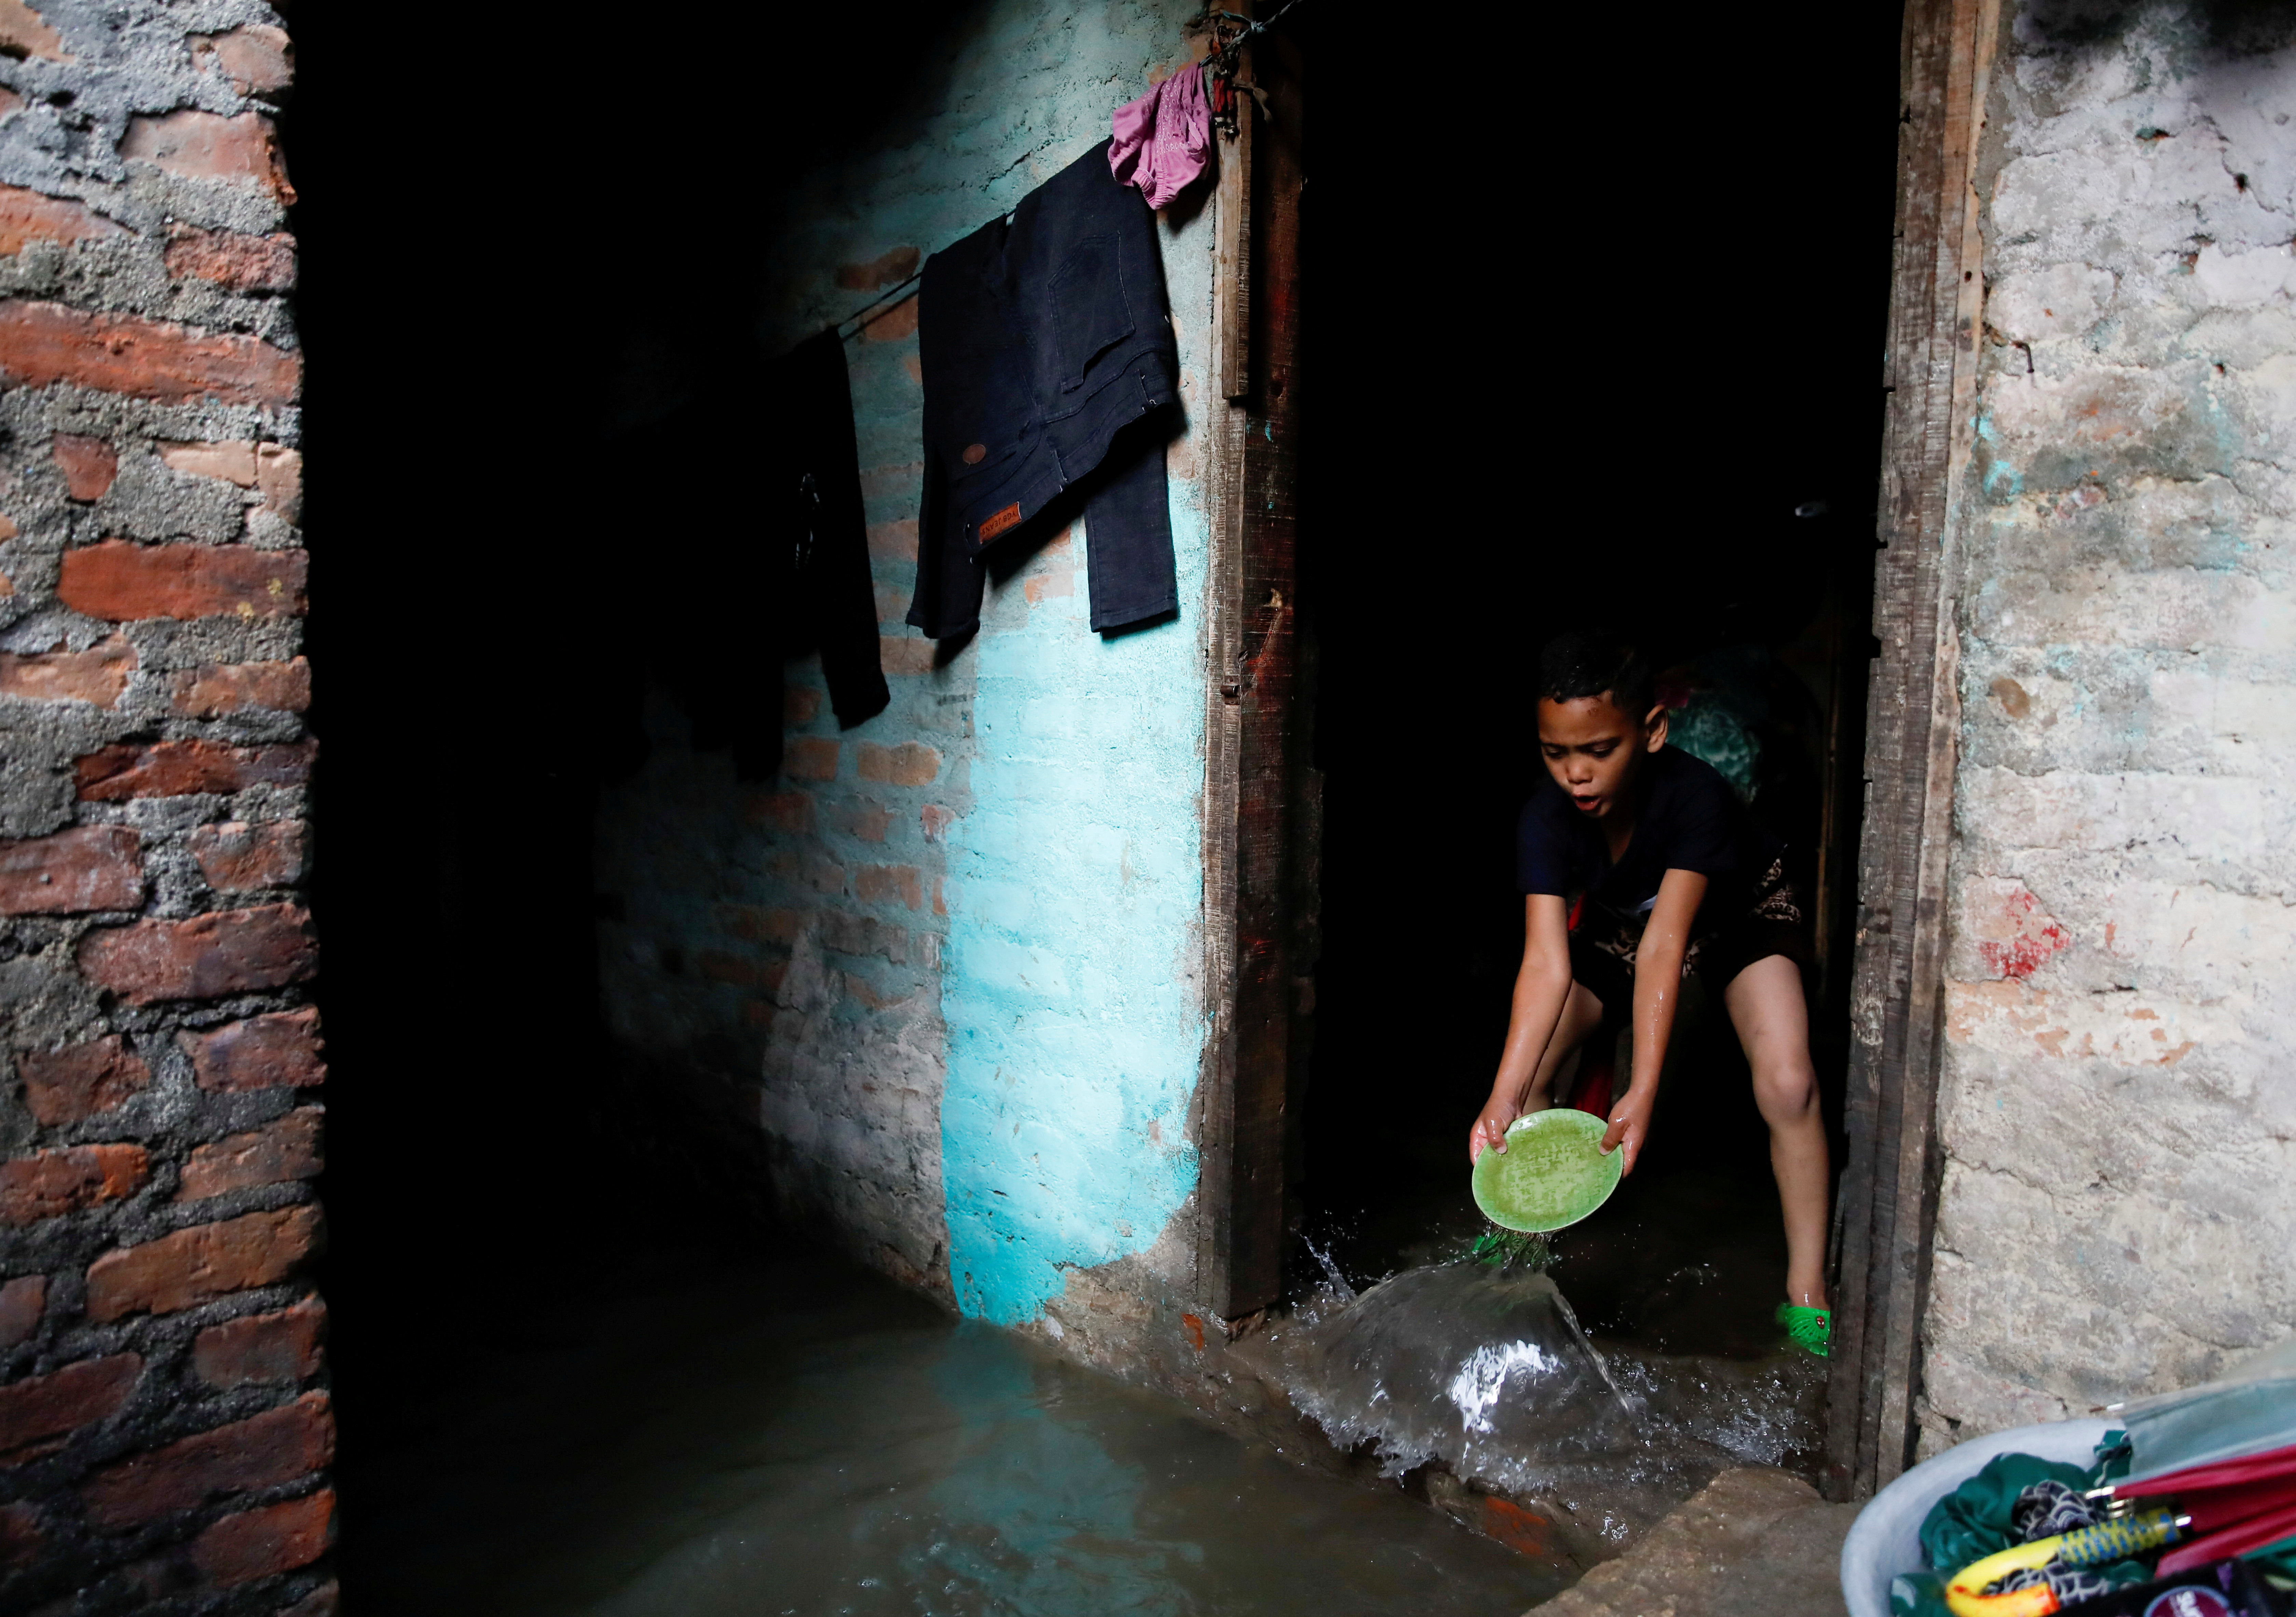 A boy uses a plate to clear water entering his house as the river overflows due to incessant rainfall at a slum along the bank of Bagmati River in Kathmandu, Nepal July 20, 2020. REUTERS/Navesh Chitrakar     TPX IMAGES OF THE DAY - RC22XH9UEVBB